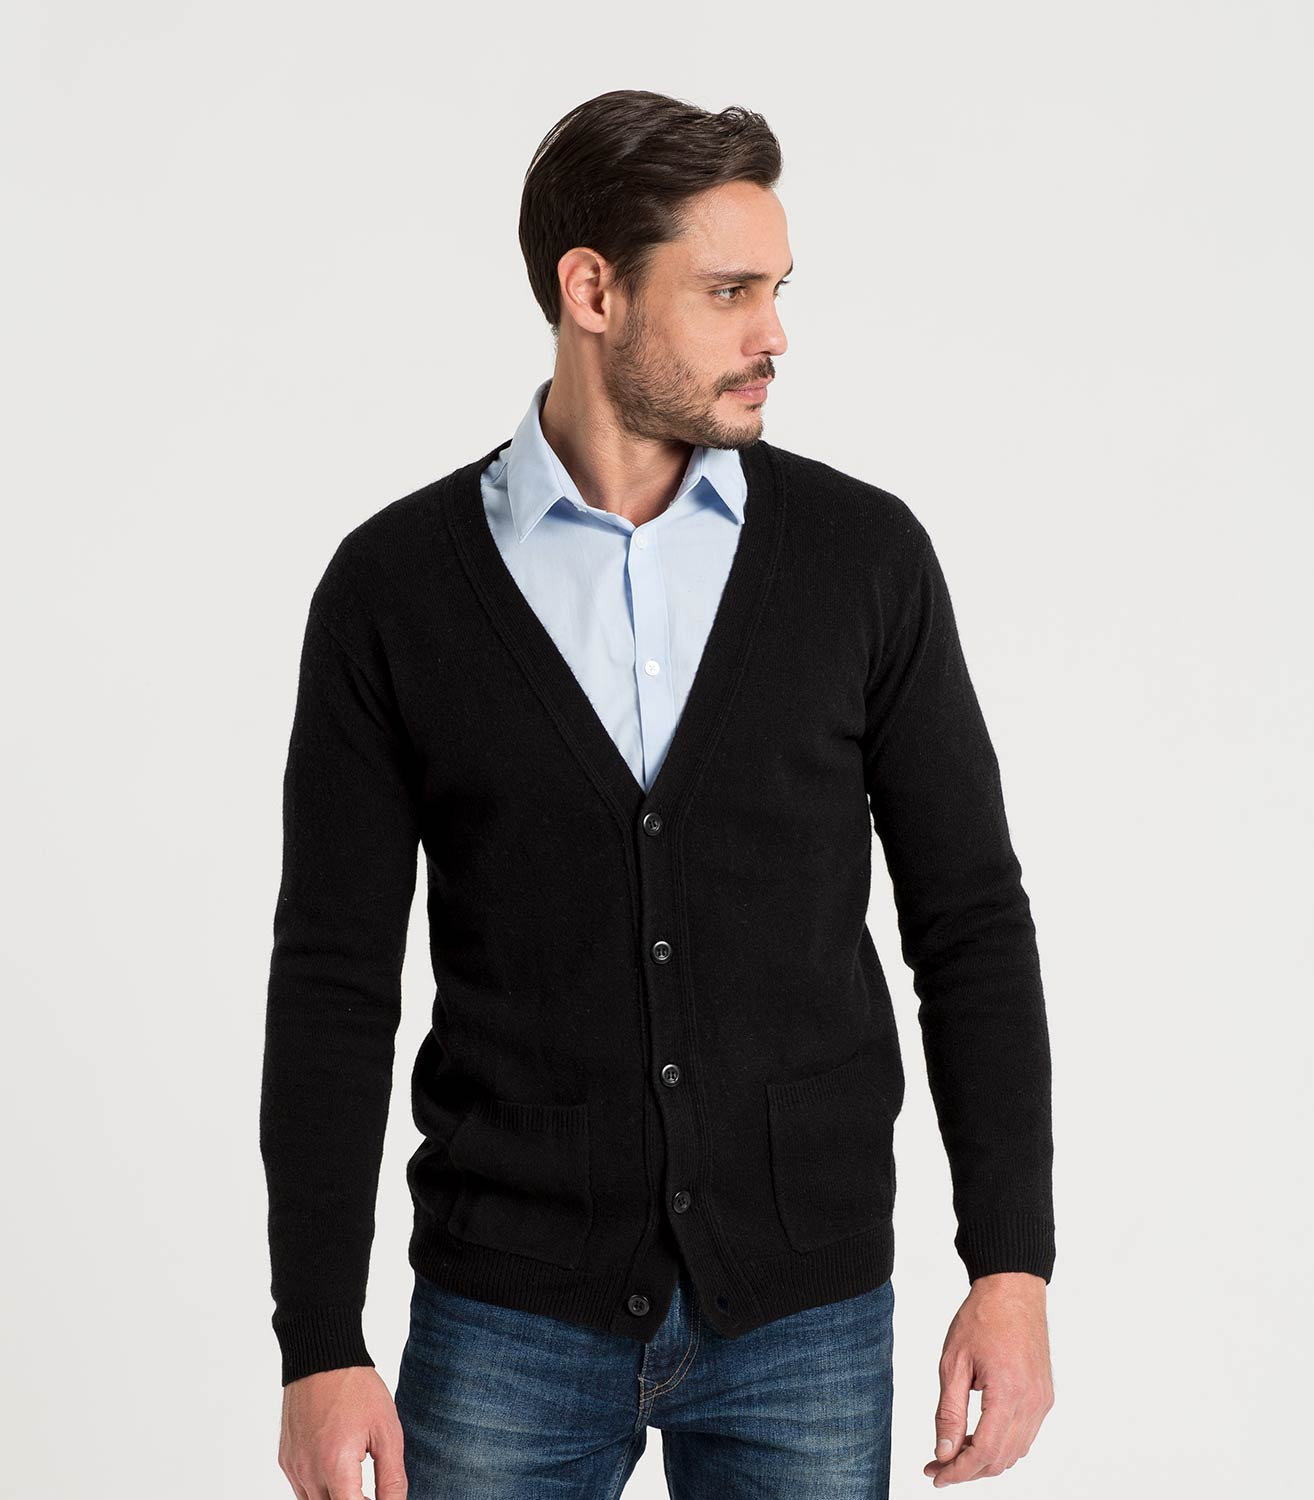 Excellent tips to choose mens cardigan sweaters